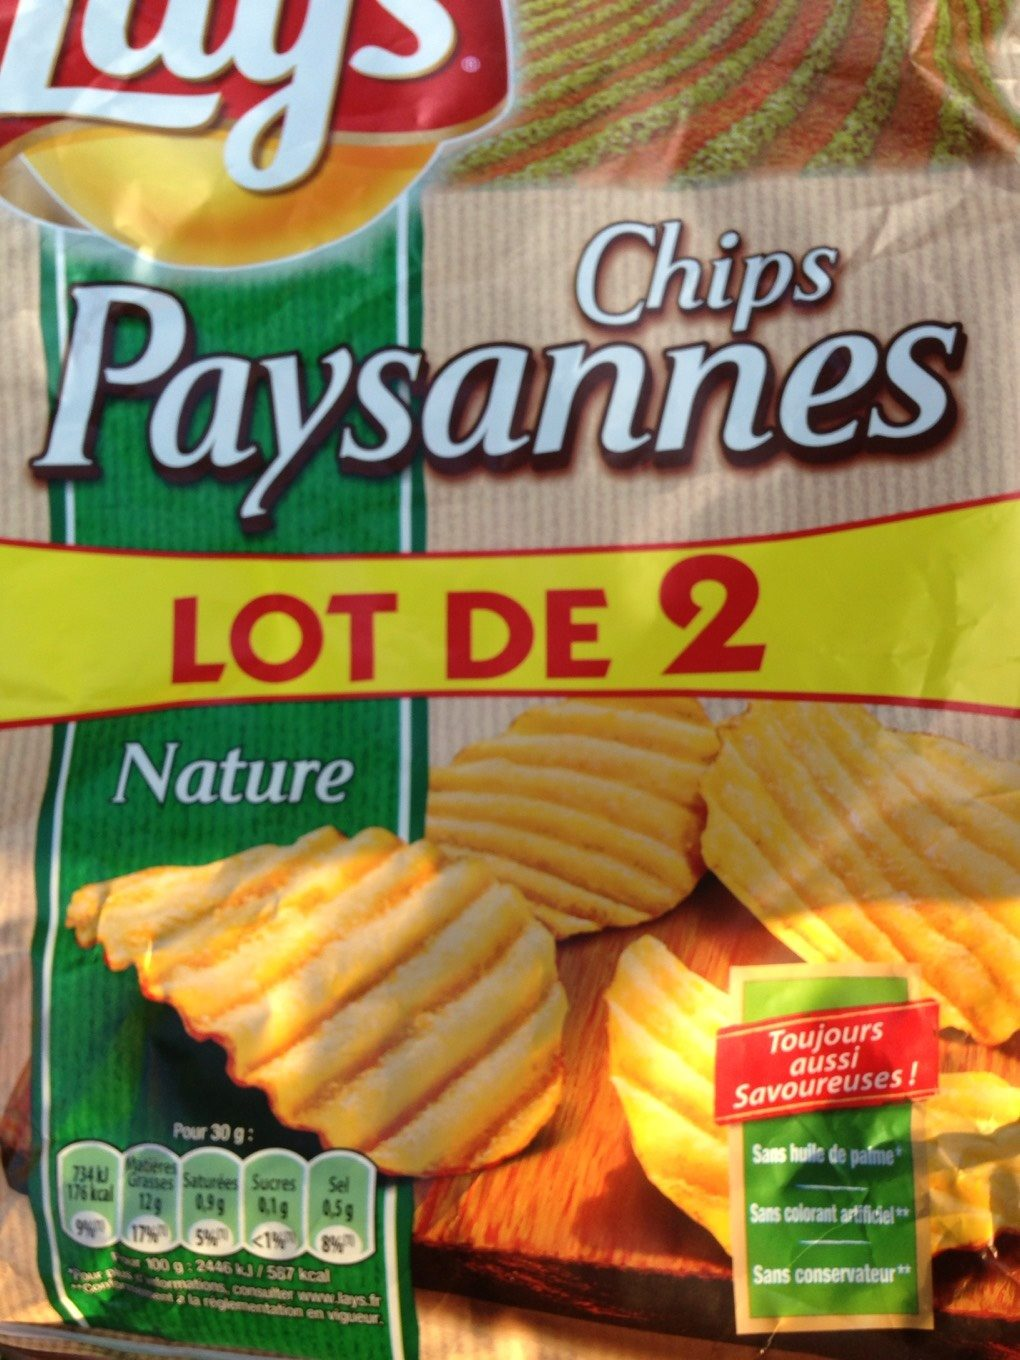 Chips lay's paysannes nature 2x150g - Product - fr